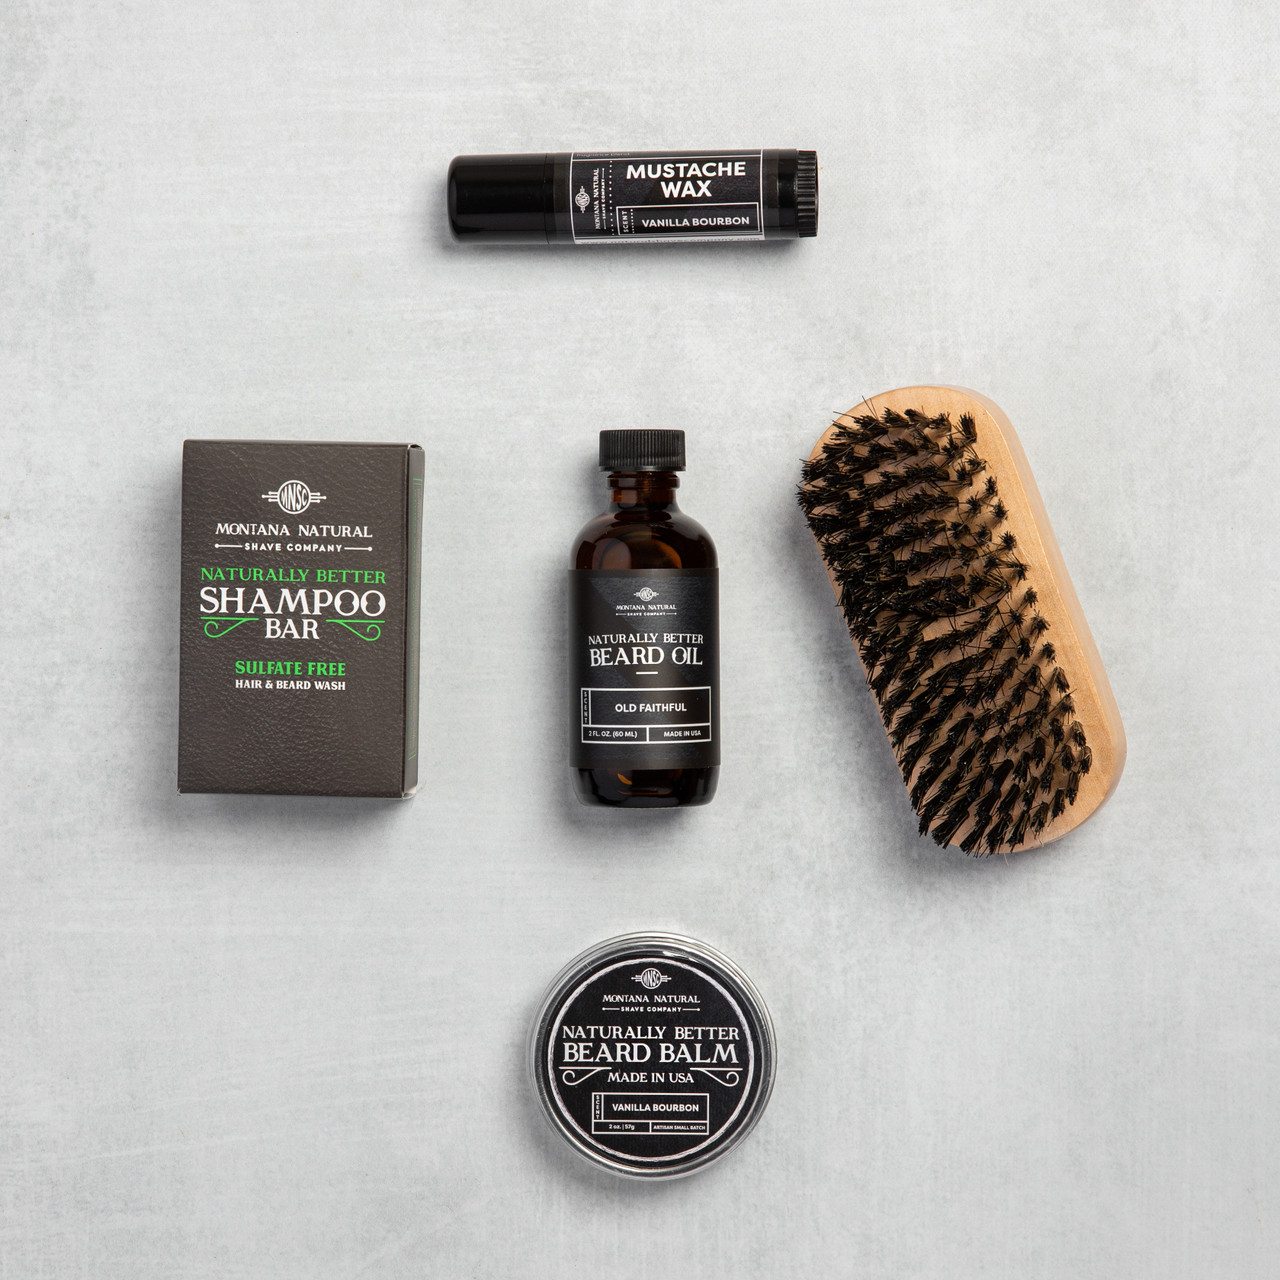 Petroleum-free, 100% Natural, Made in USA - Our Beard Gift Set is the perfect give for the unshaven.